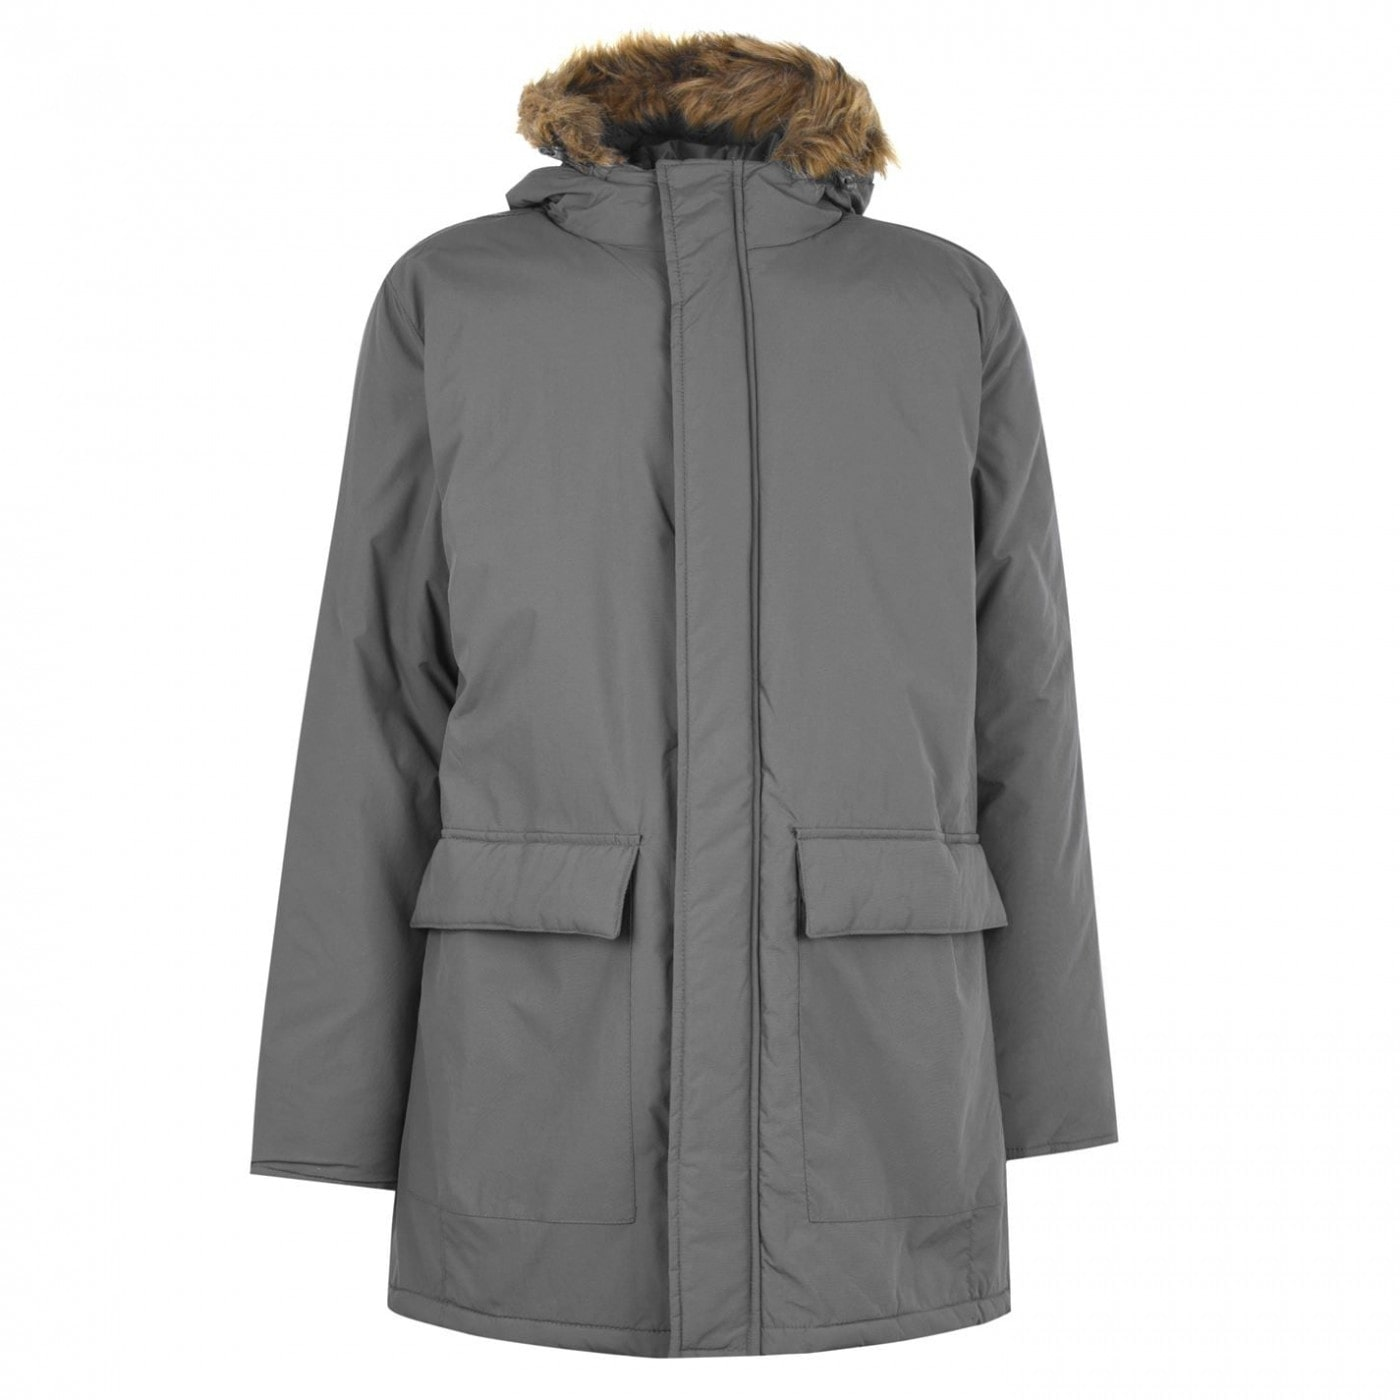 French Connection Connection Parka Jacket